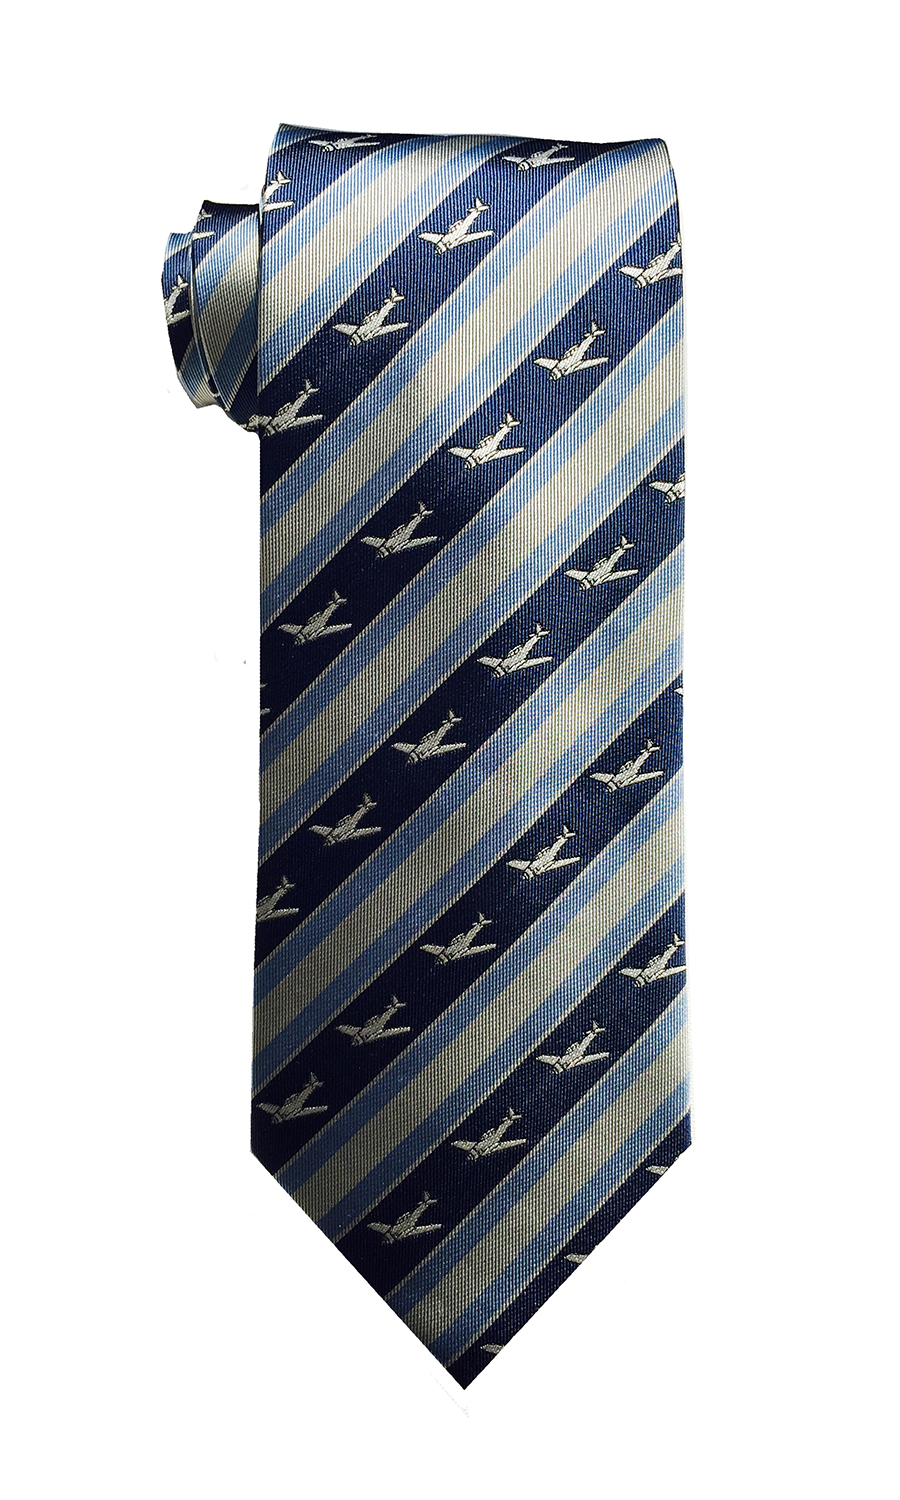 doppeldecker design designer aviation aircraft silk tie t6 t-6